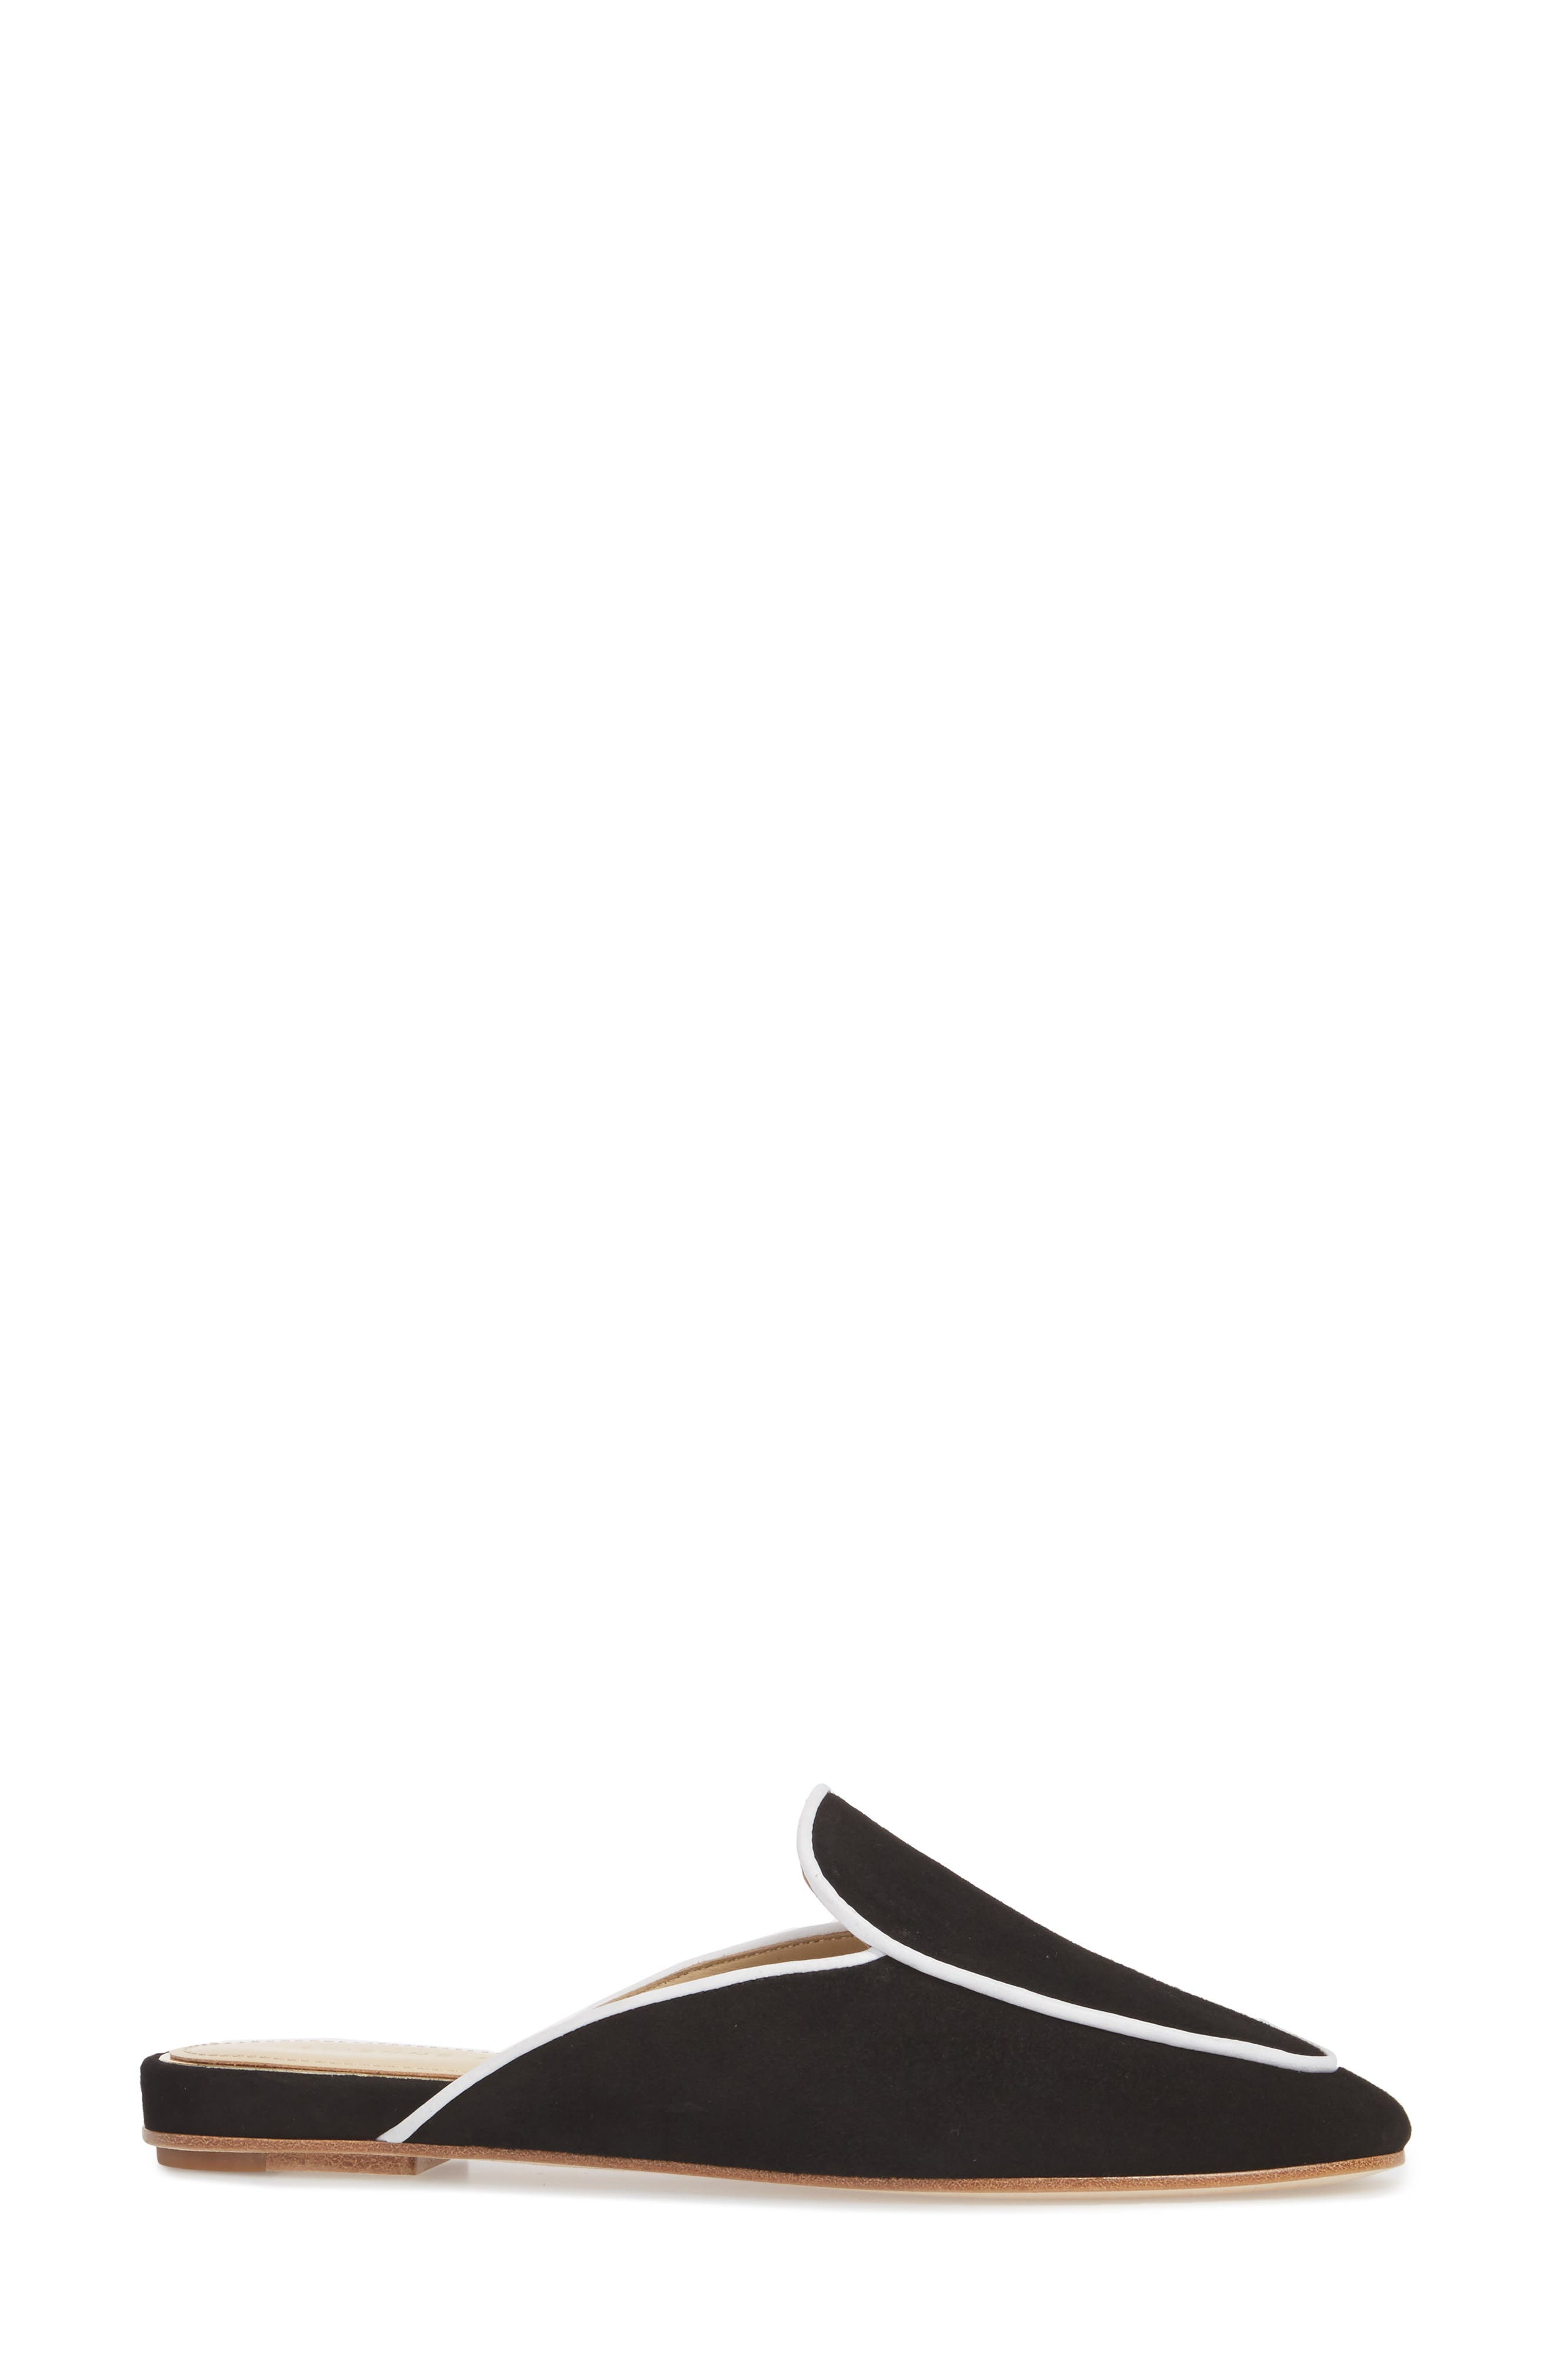 Capri Apron Toe Loafer Mule,                             Alternate thumbnail 3, color,                             BLACK/ WHITE SUEDE